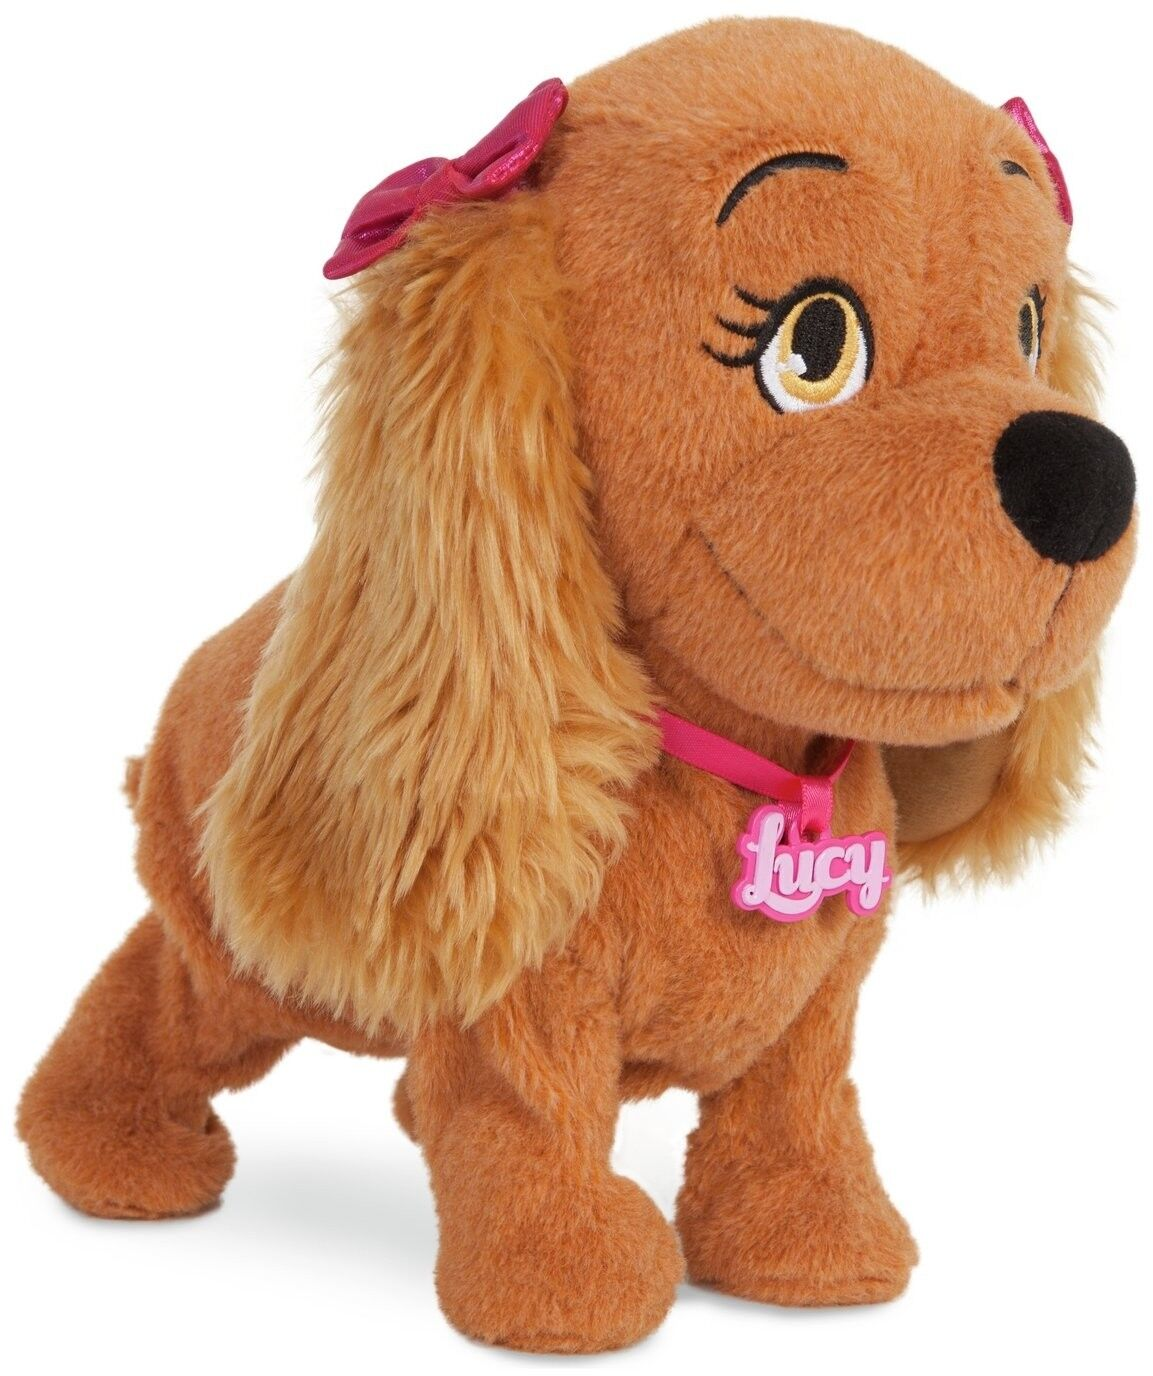 Petz Lucy Sing and Dance Plush